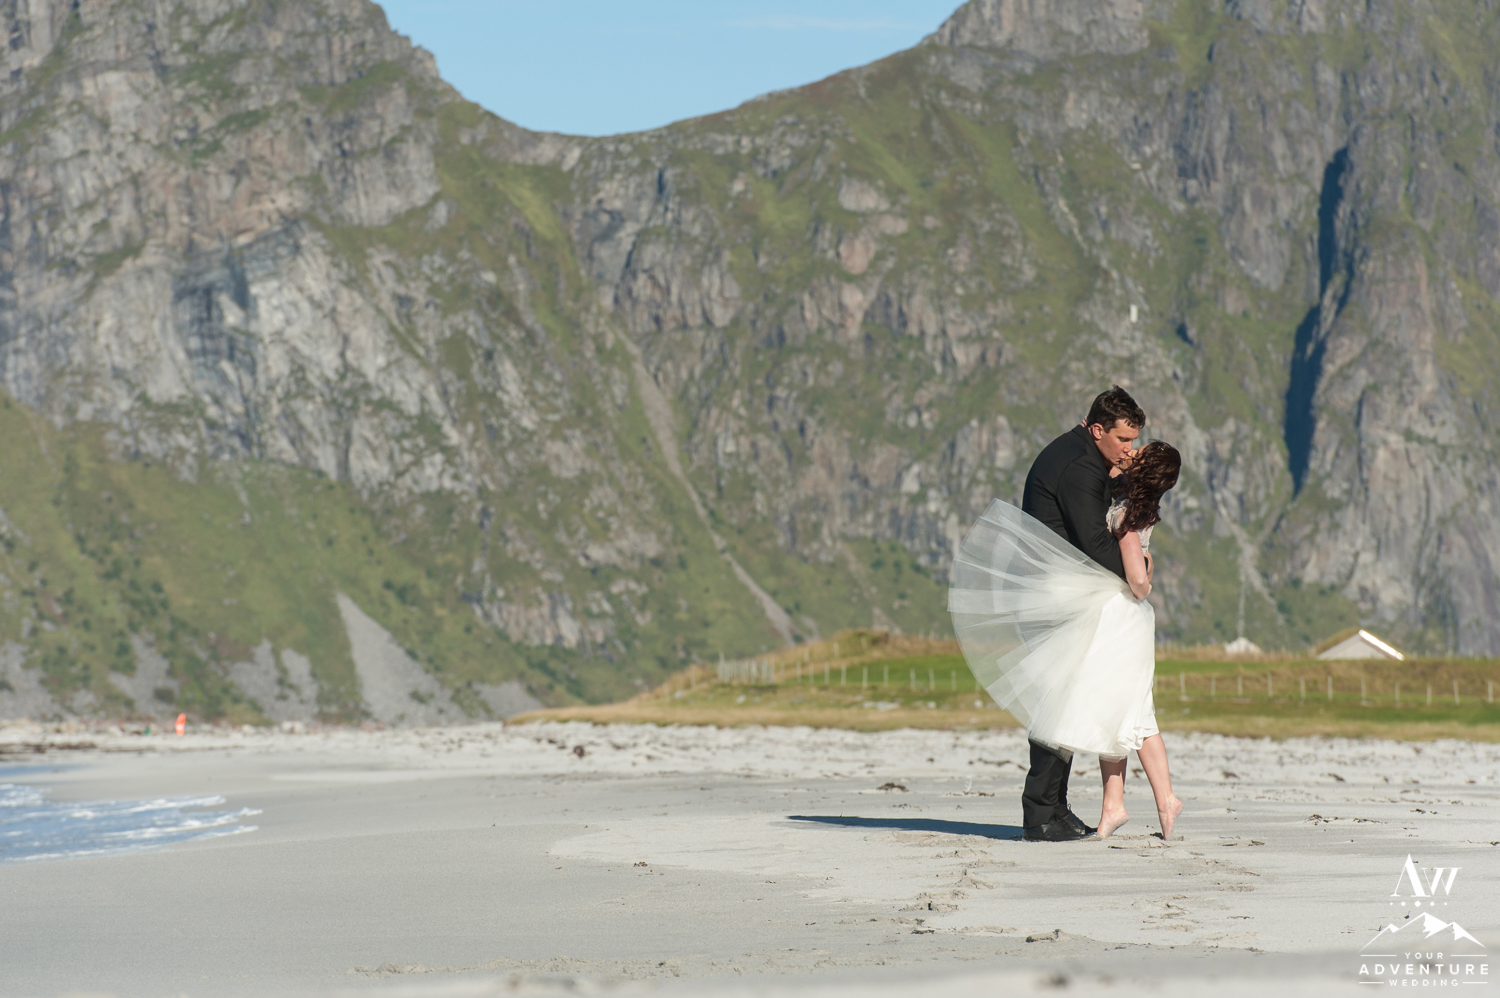 lofoten-islands-wedding-photos-your-adventure-wedding-48